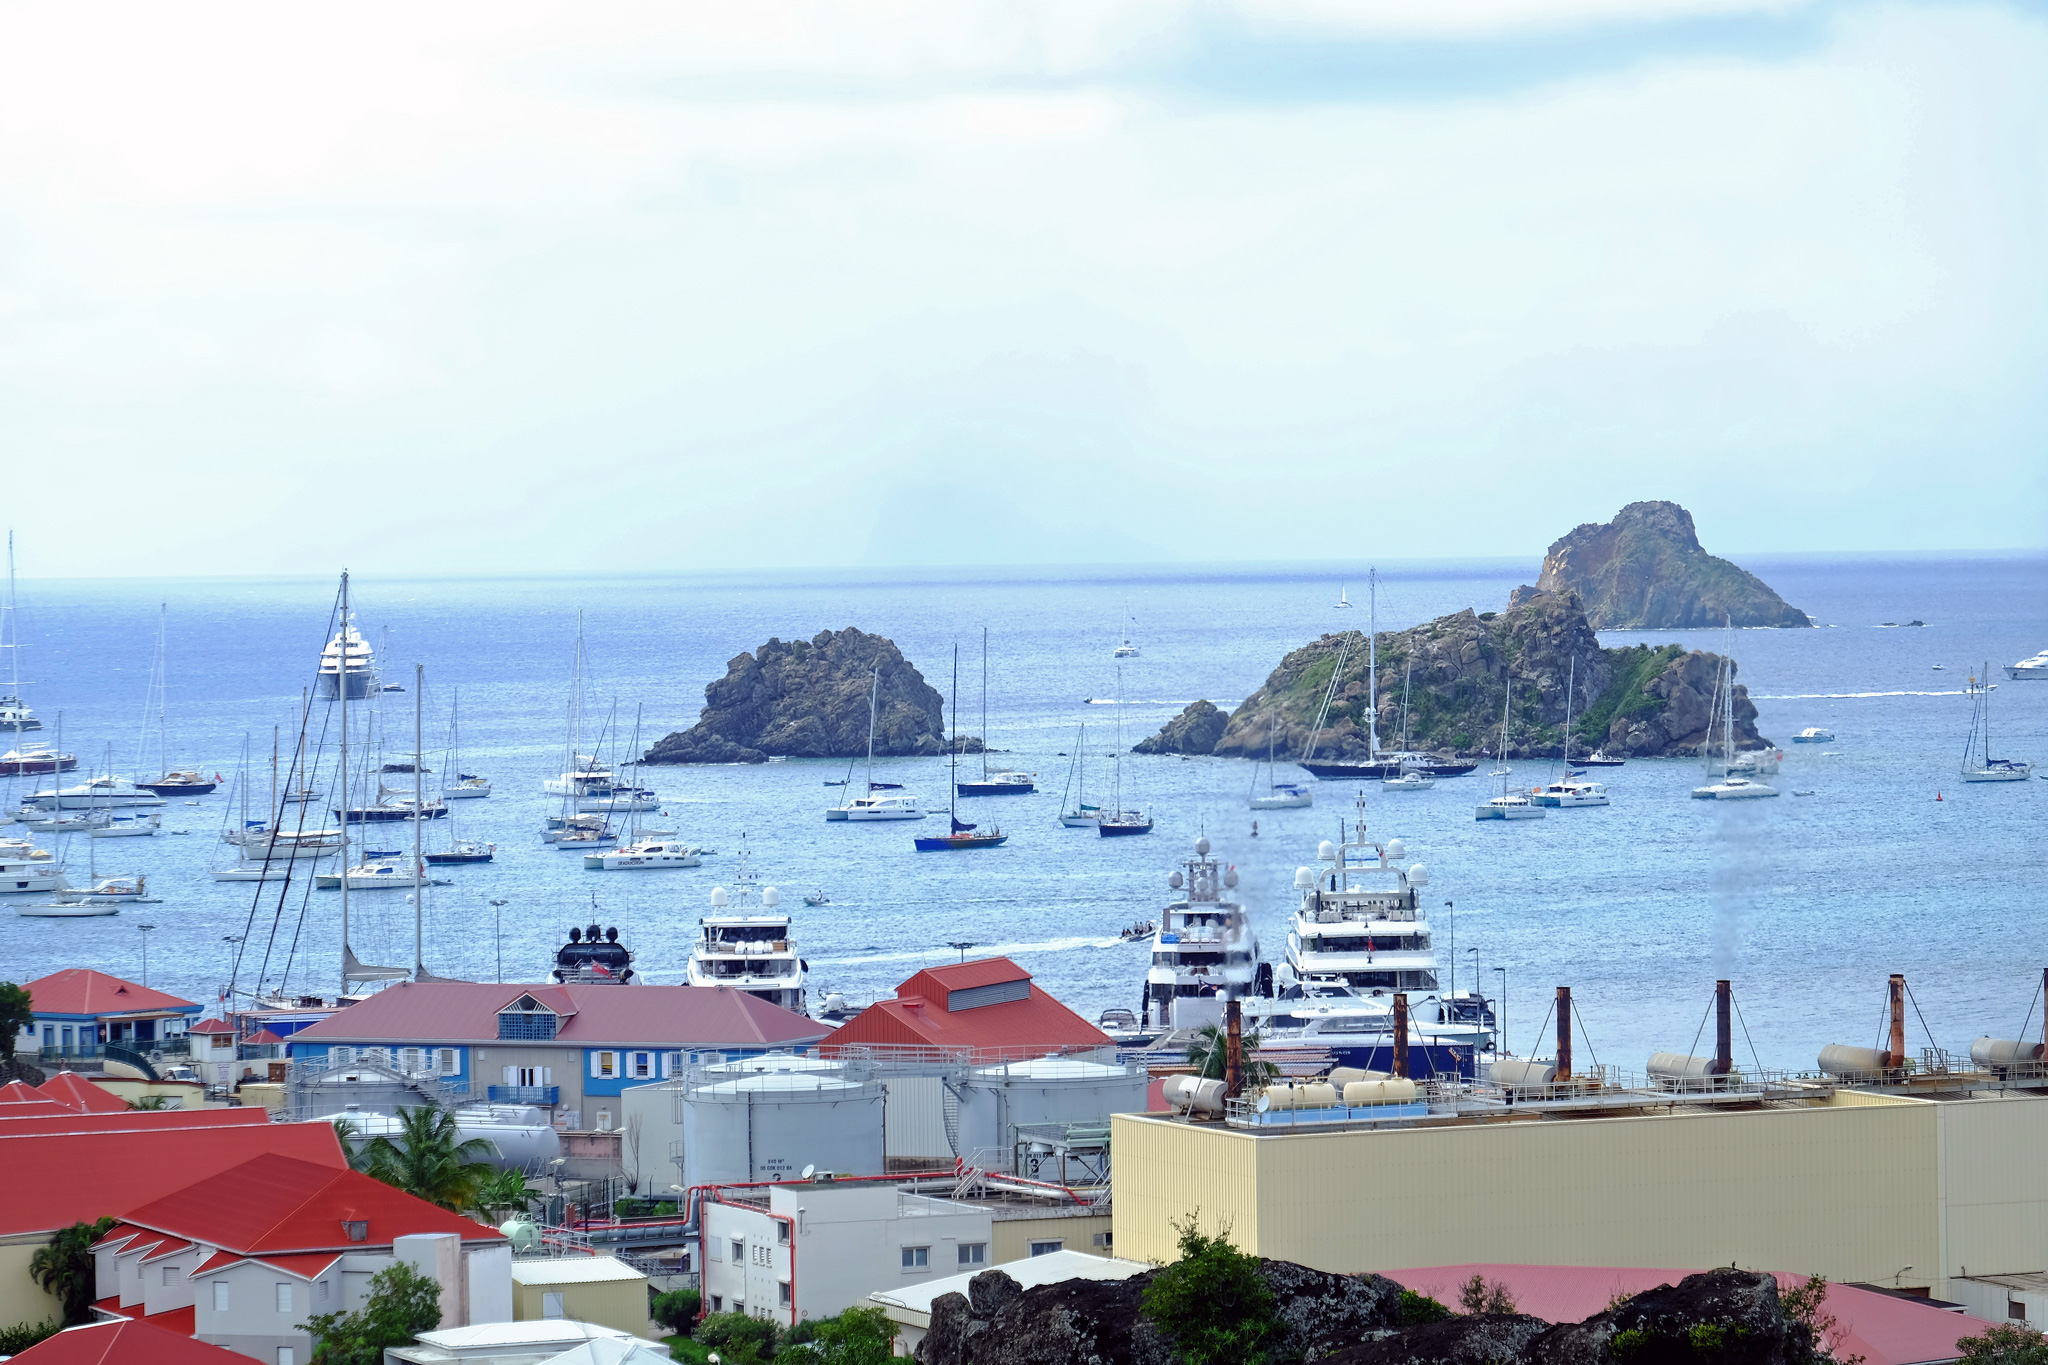 st-barth-st-barth-st-barthelemy-lifestyle-blog-lieblingsstil-com-dscf2715